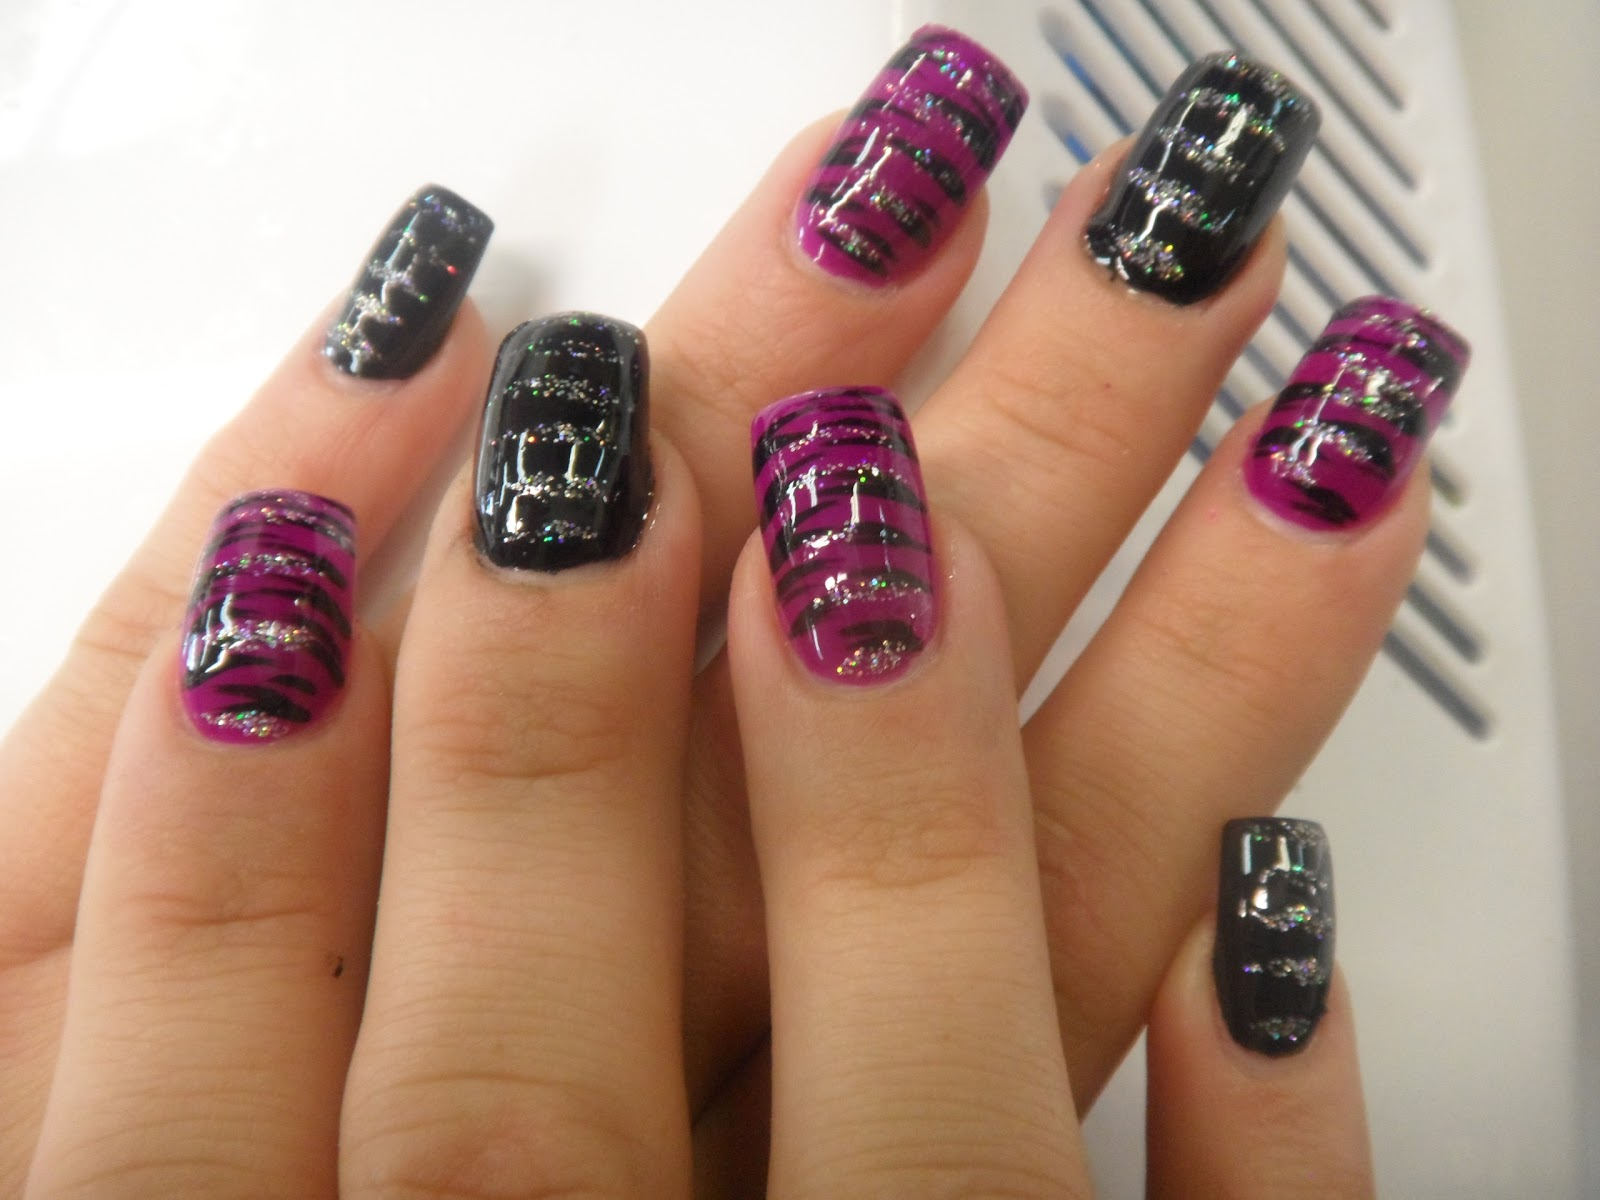 T J Nails, 3621 Galley Road, Colorado Springs, Reviews and ...